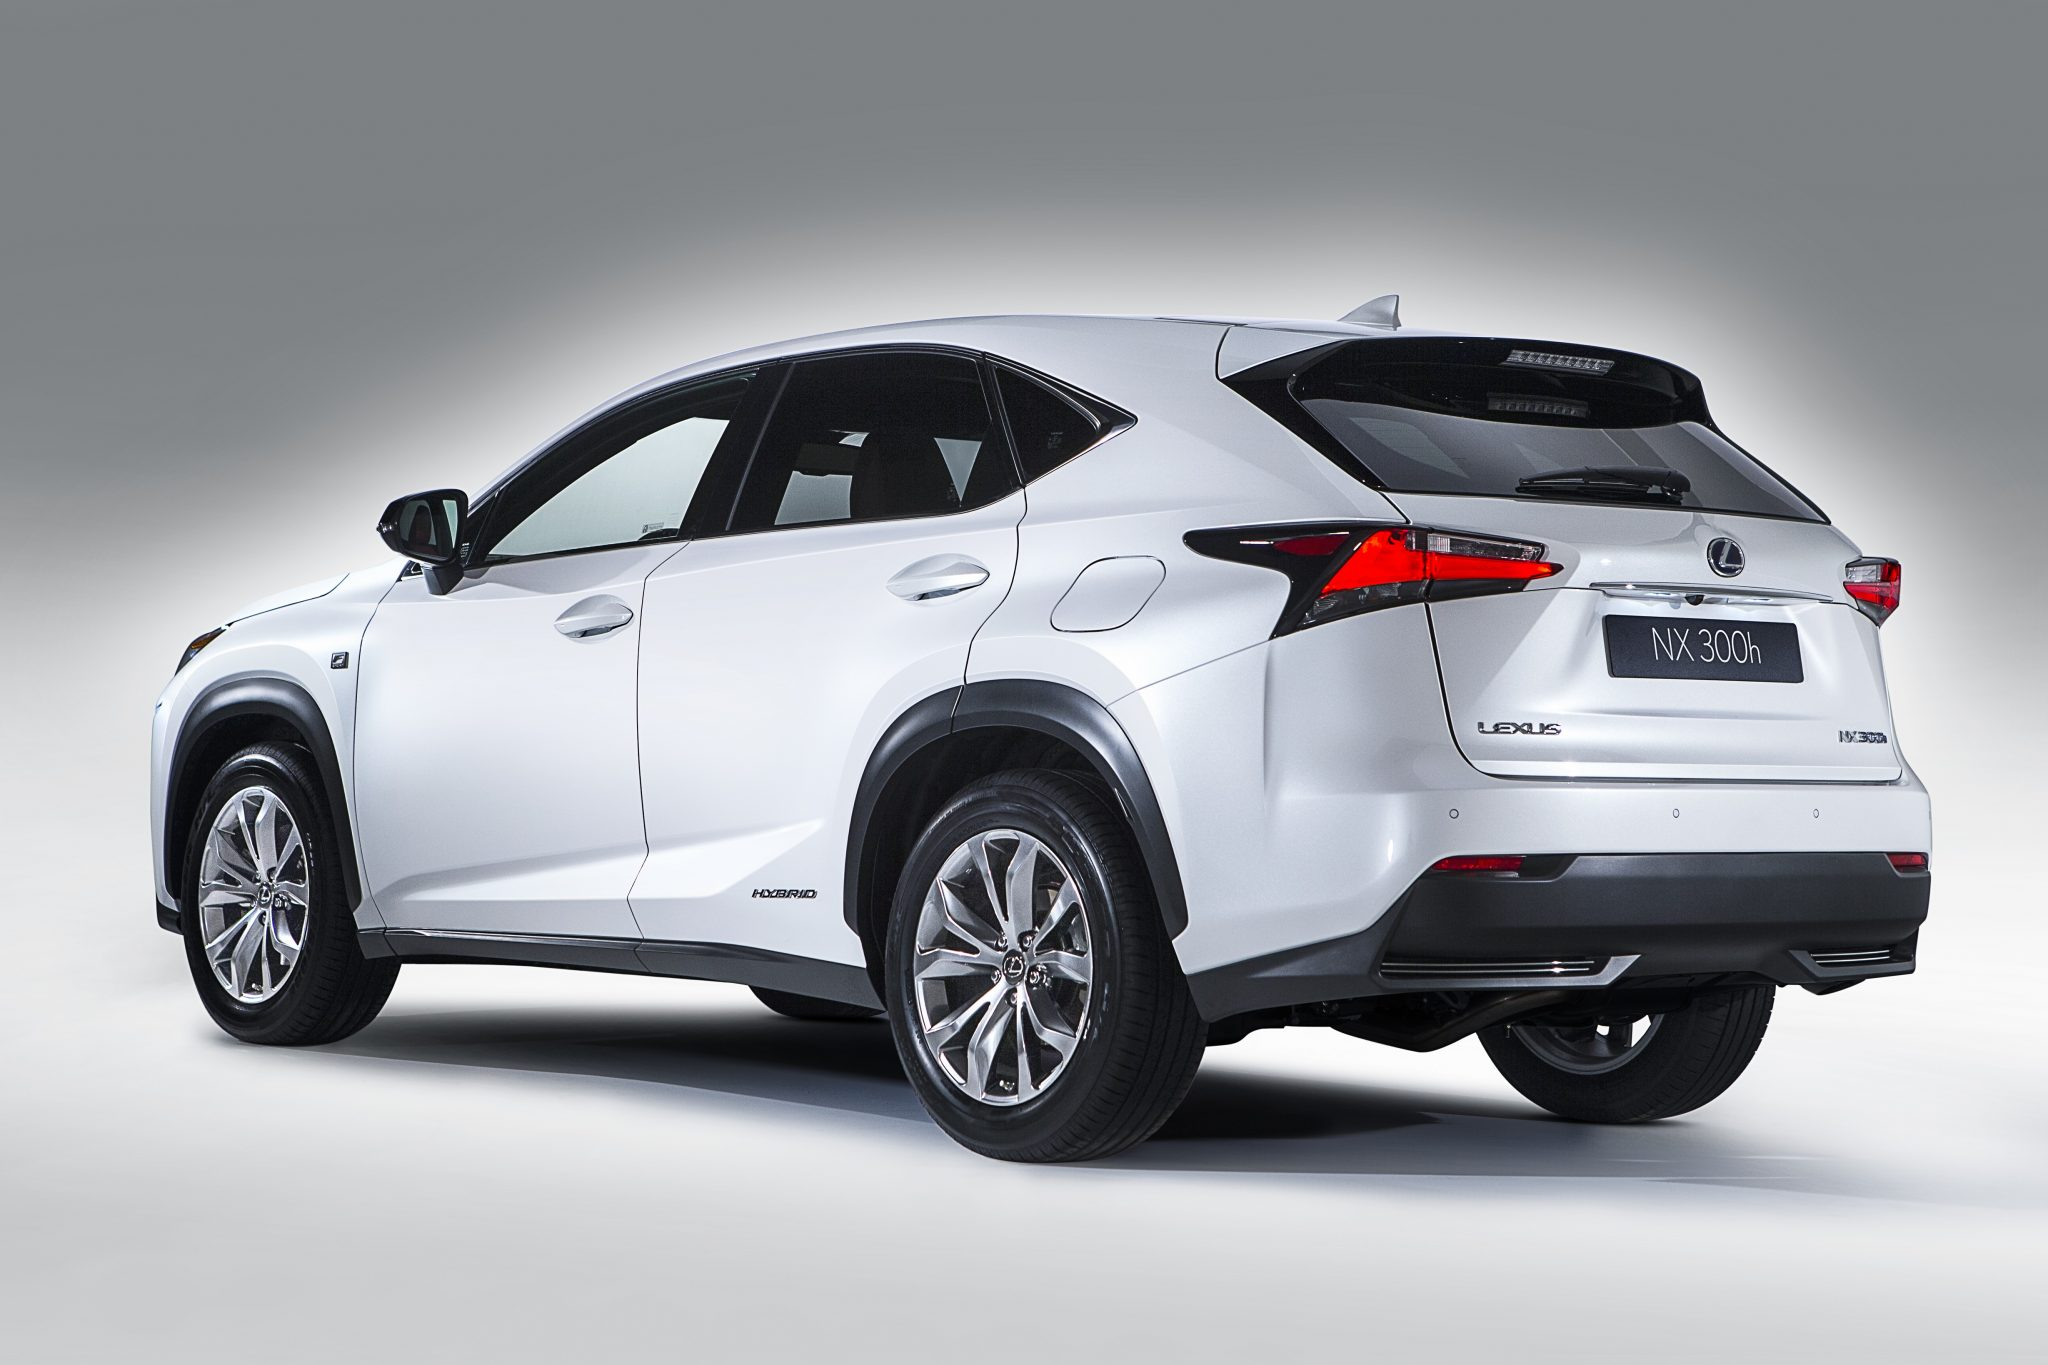 Lexus Cars News Lexus NX promises to drive SUV innovation